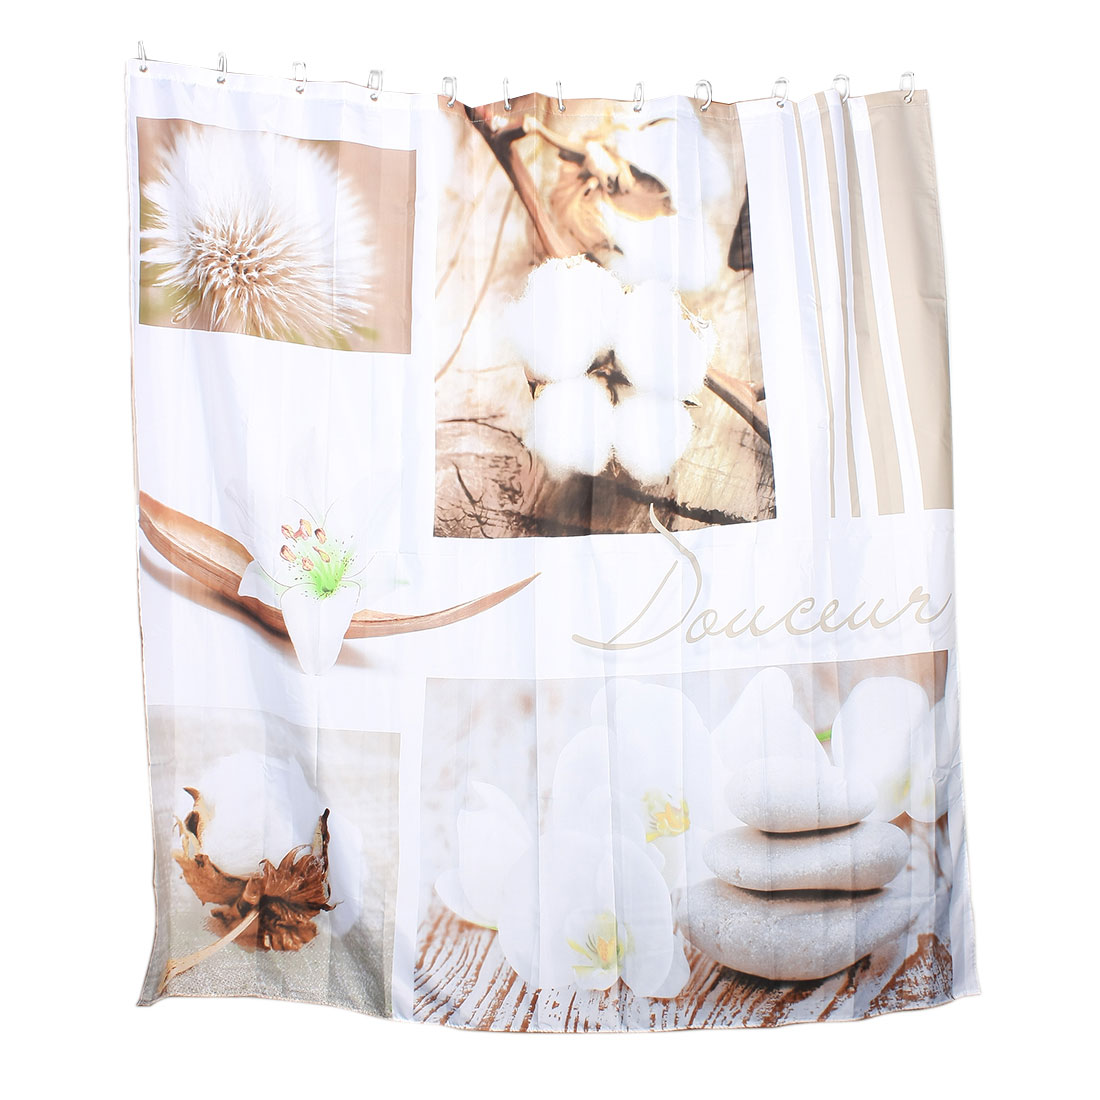 Cotton Flower Stone Print Bathroom Shower Curtain w Ring Hooks 180 x 180cm